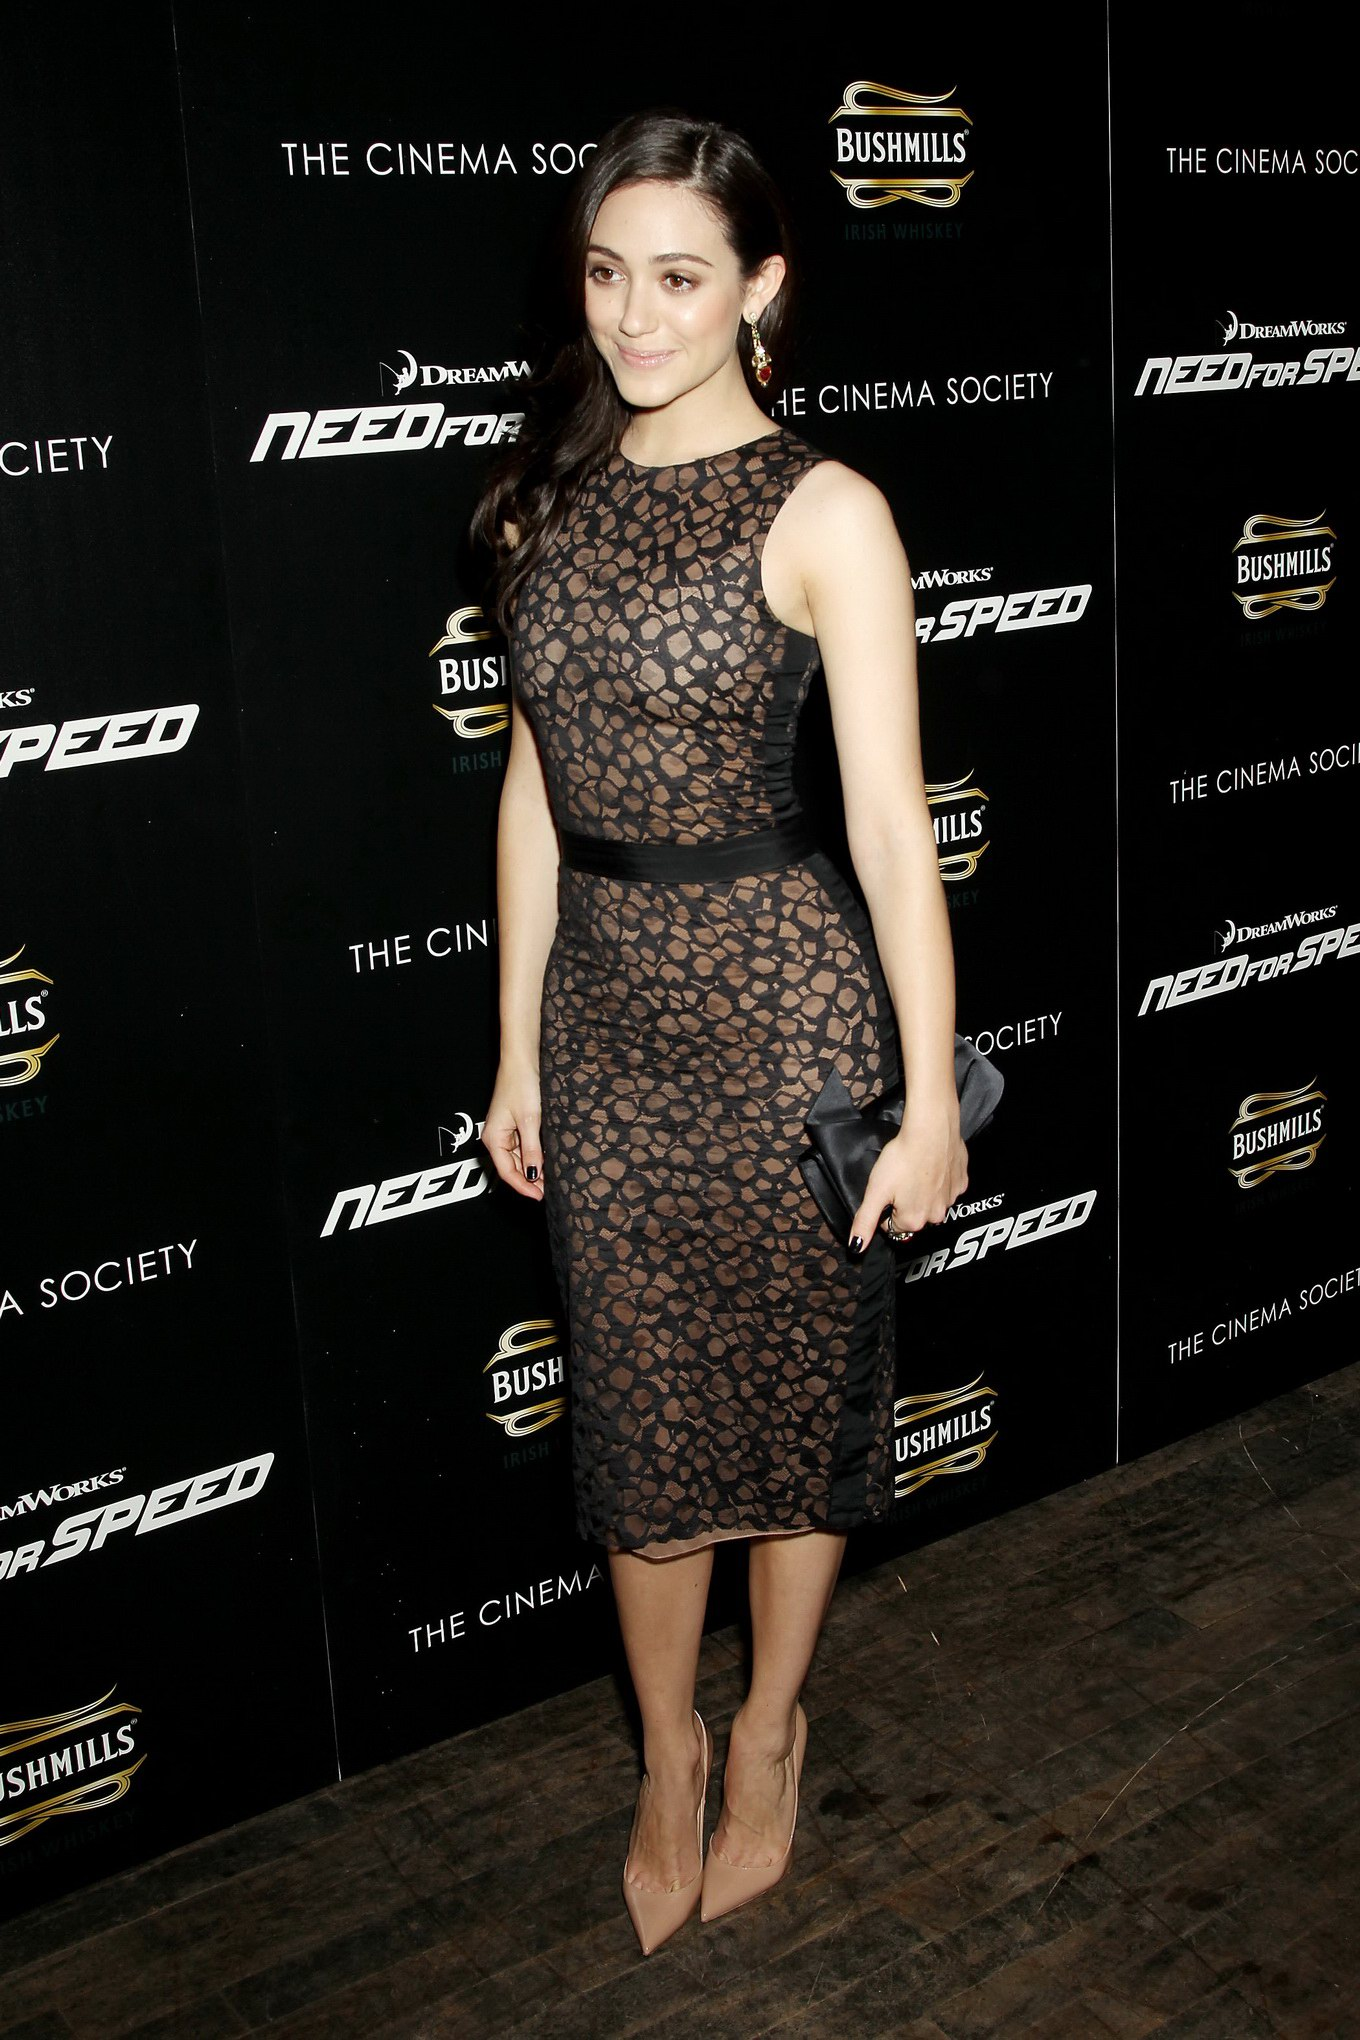 Emmy Rossum seethrough to bra at the Need For Speed screening in New York City